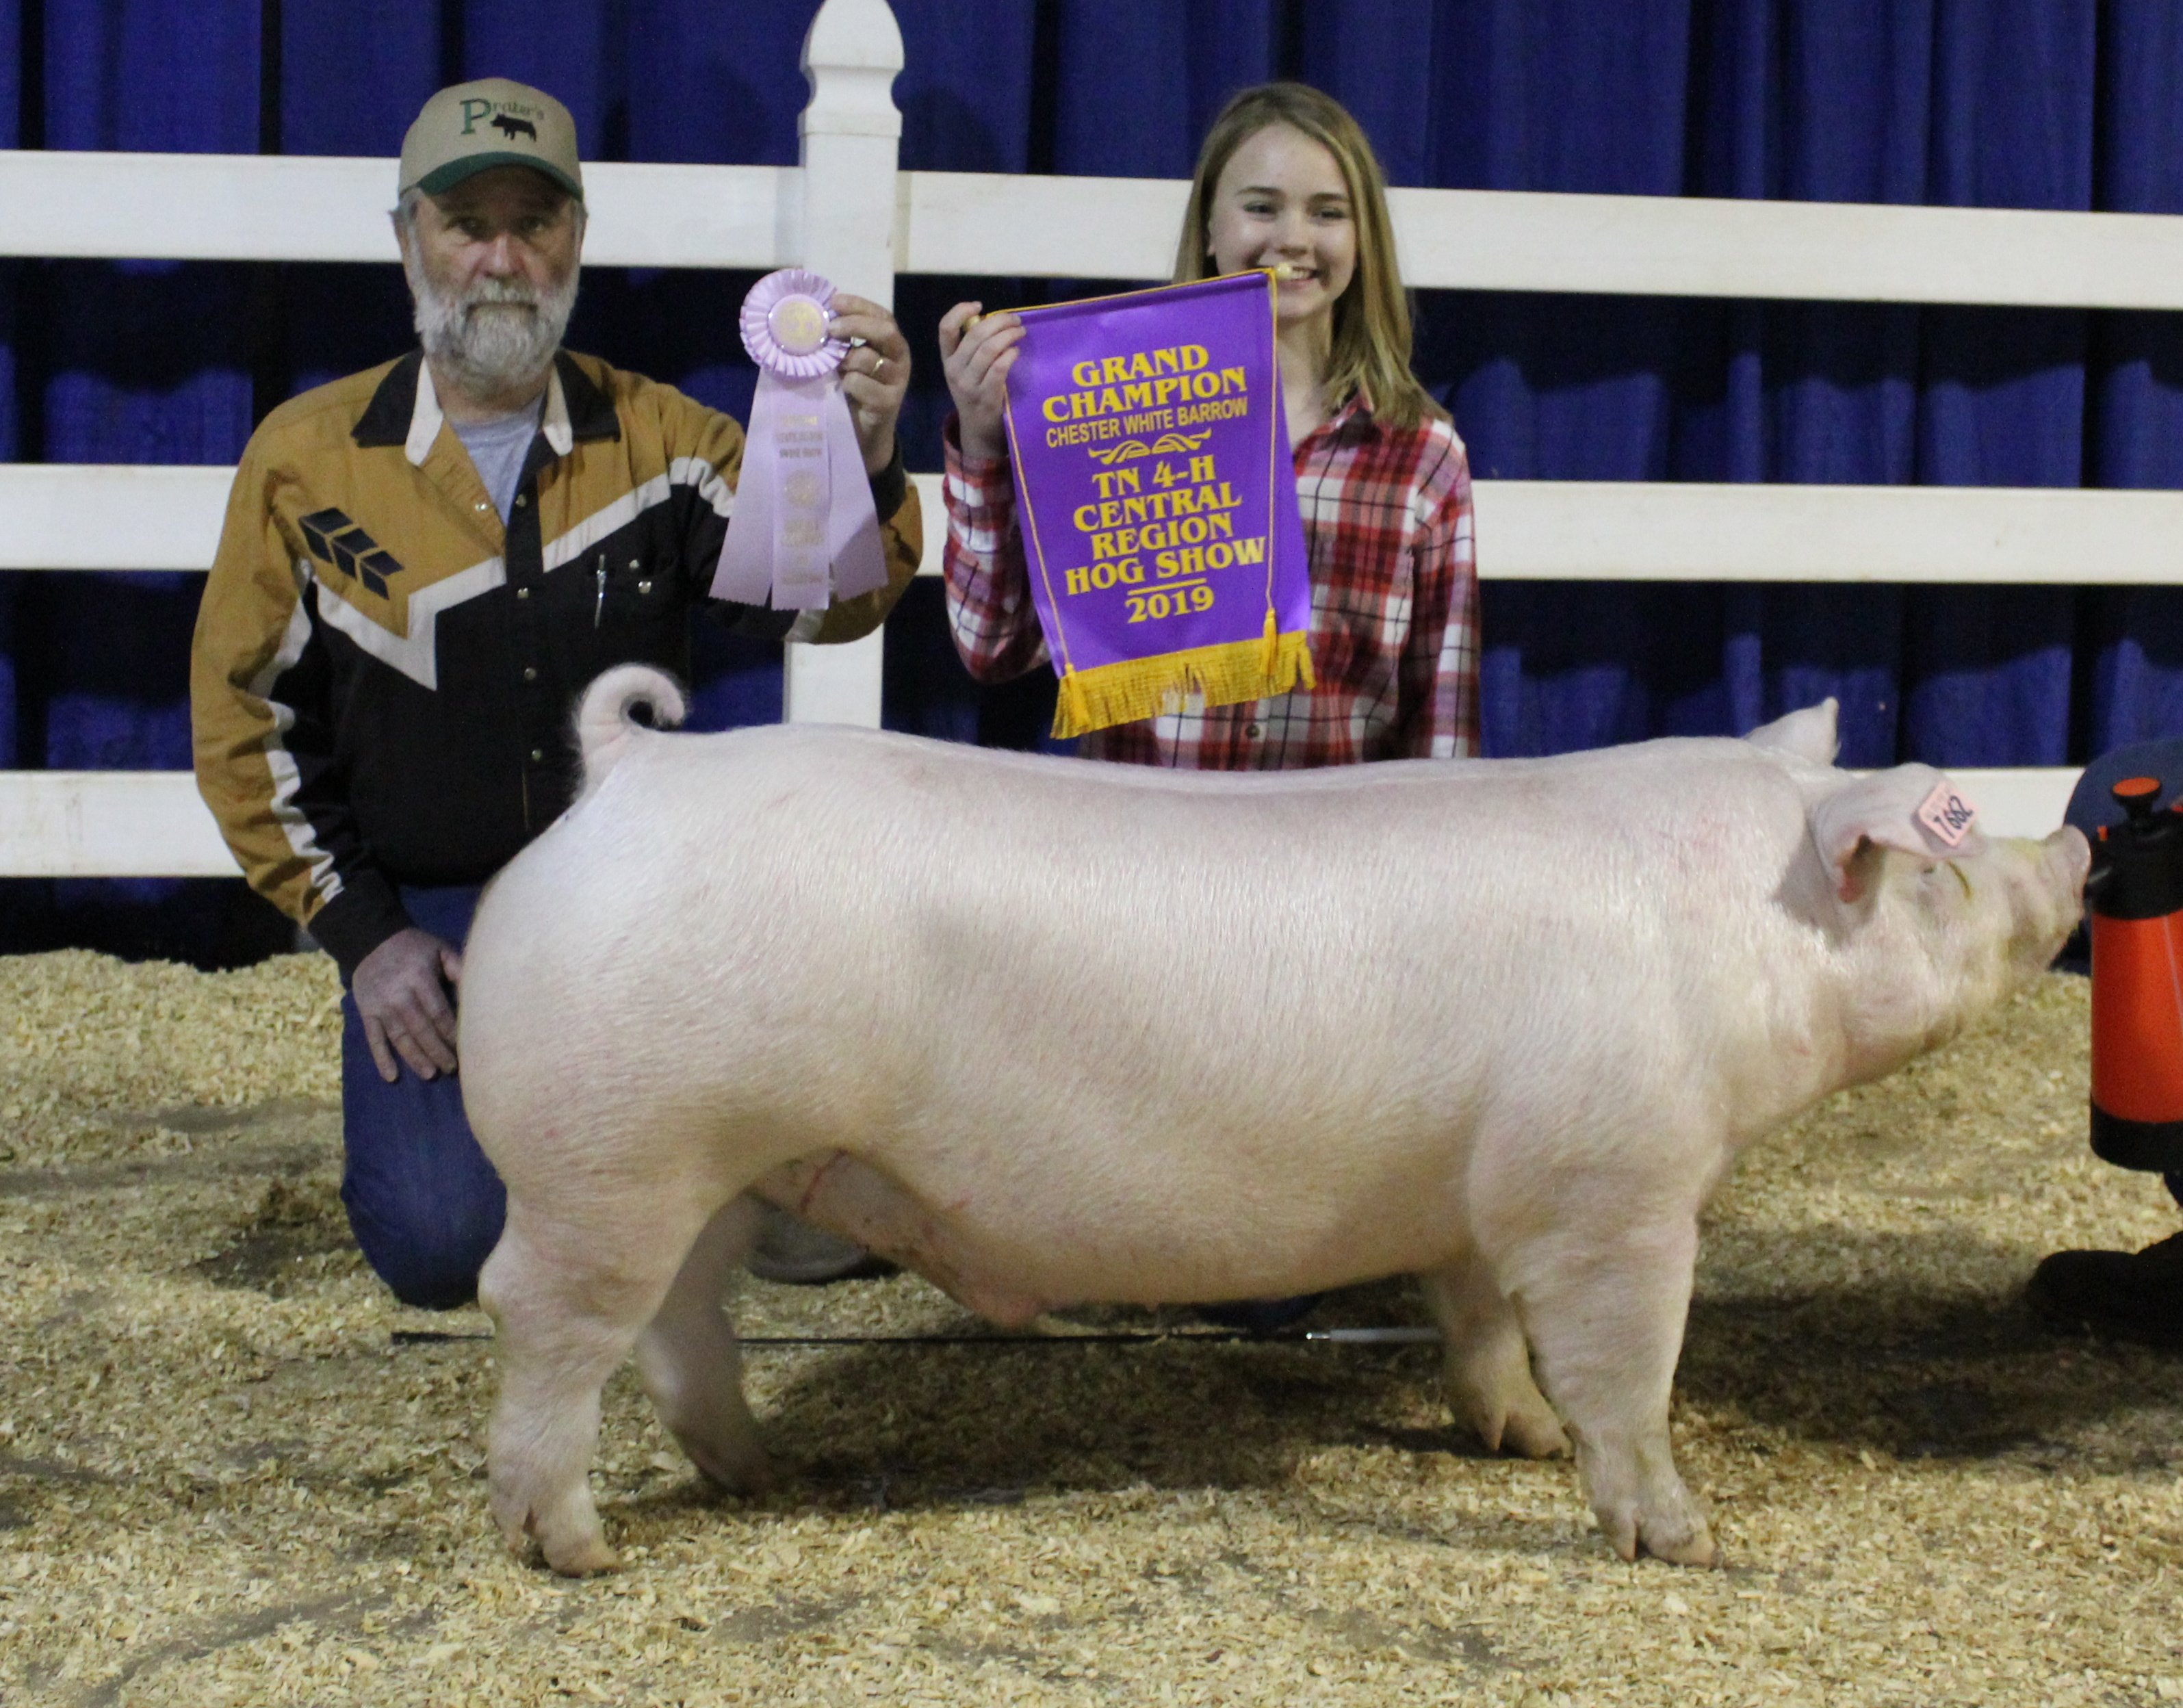 Hannah Sanders 2019 TN Central Region Show Champion Chester White Barrow 2019 Tennessee State Show Reserve Champion Chester White Barrow